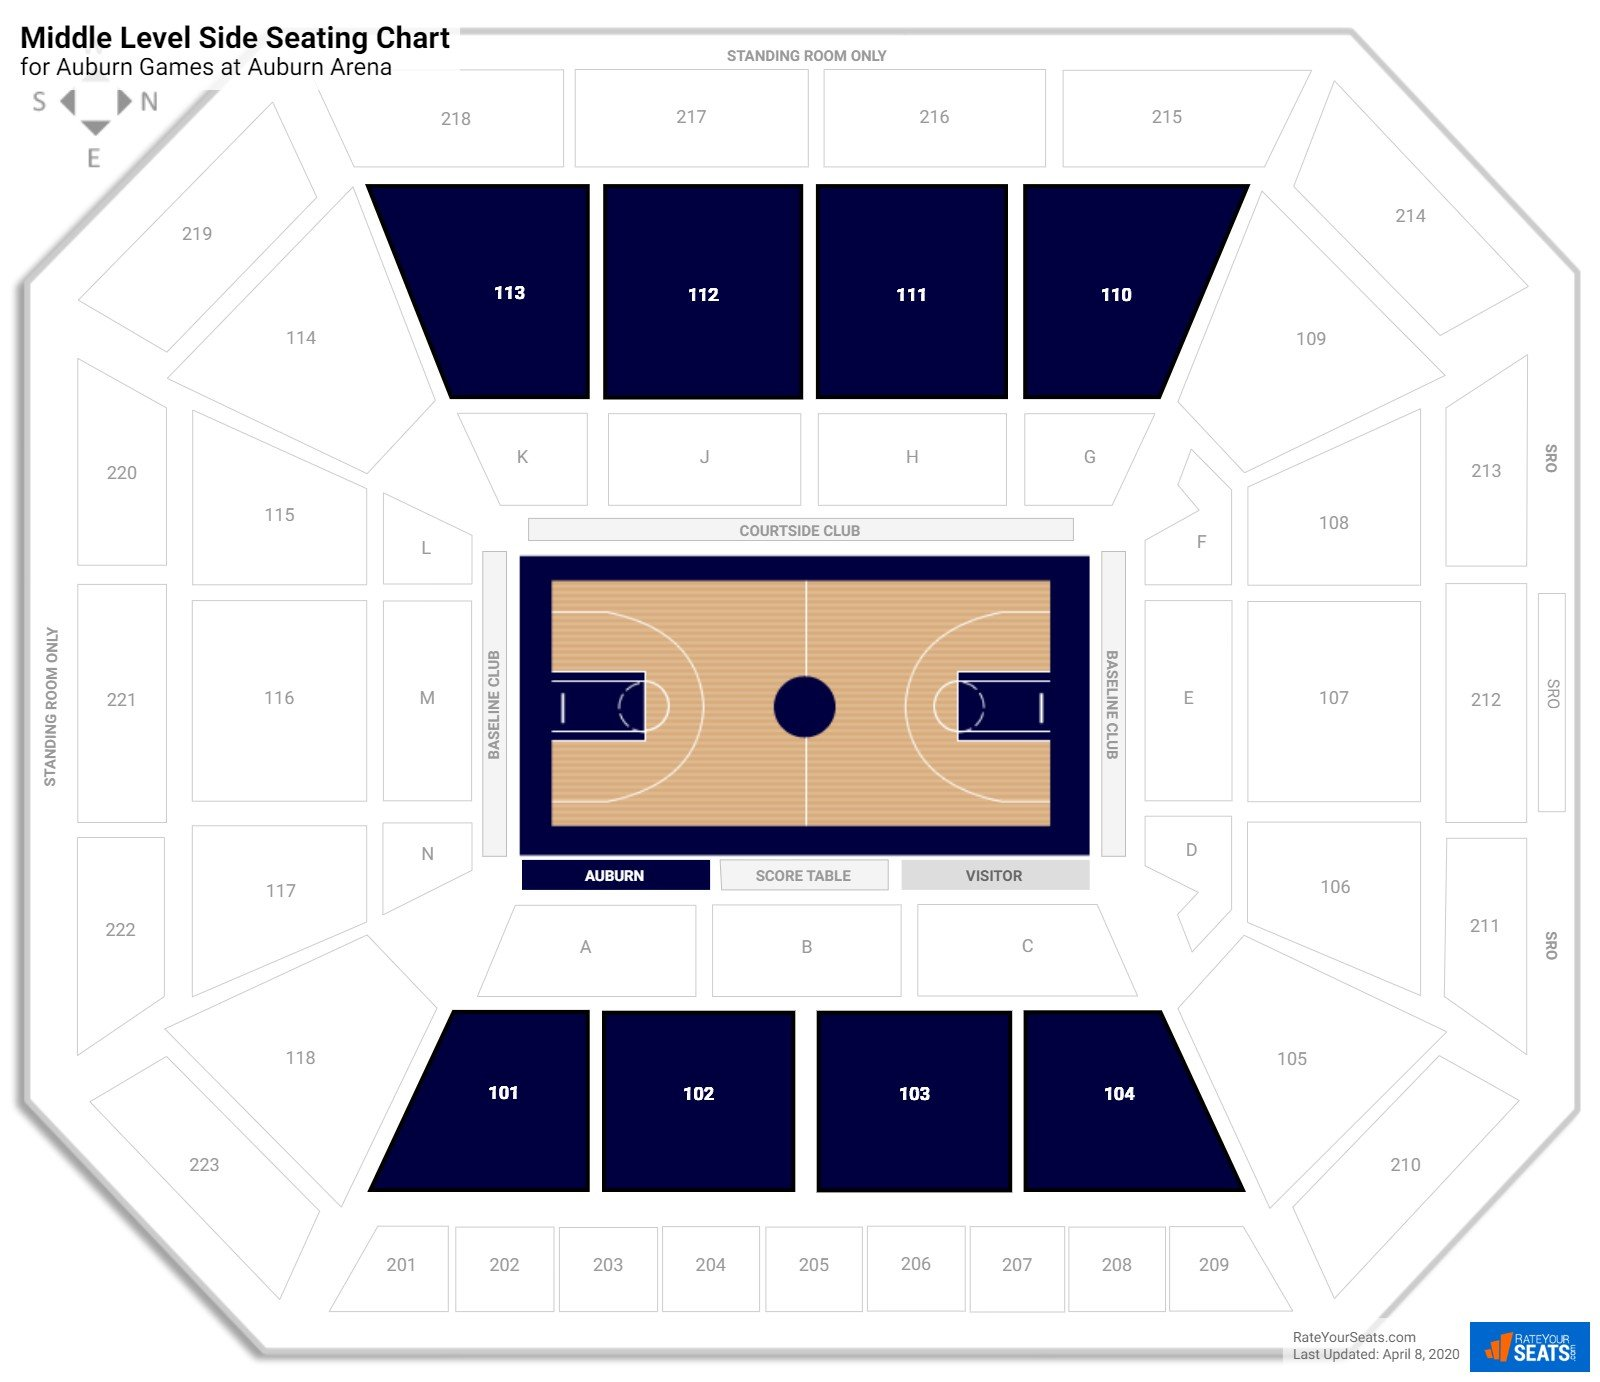 Auburn Arena Middle Level Side seating chart